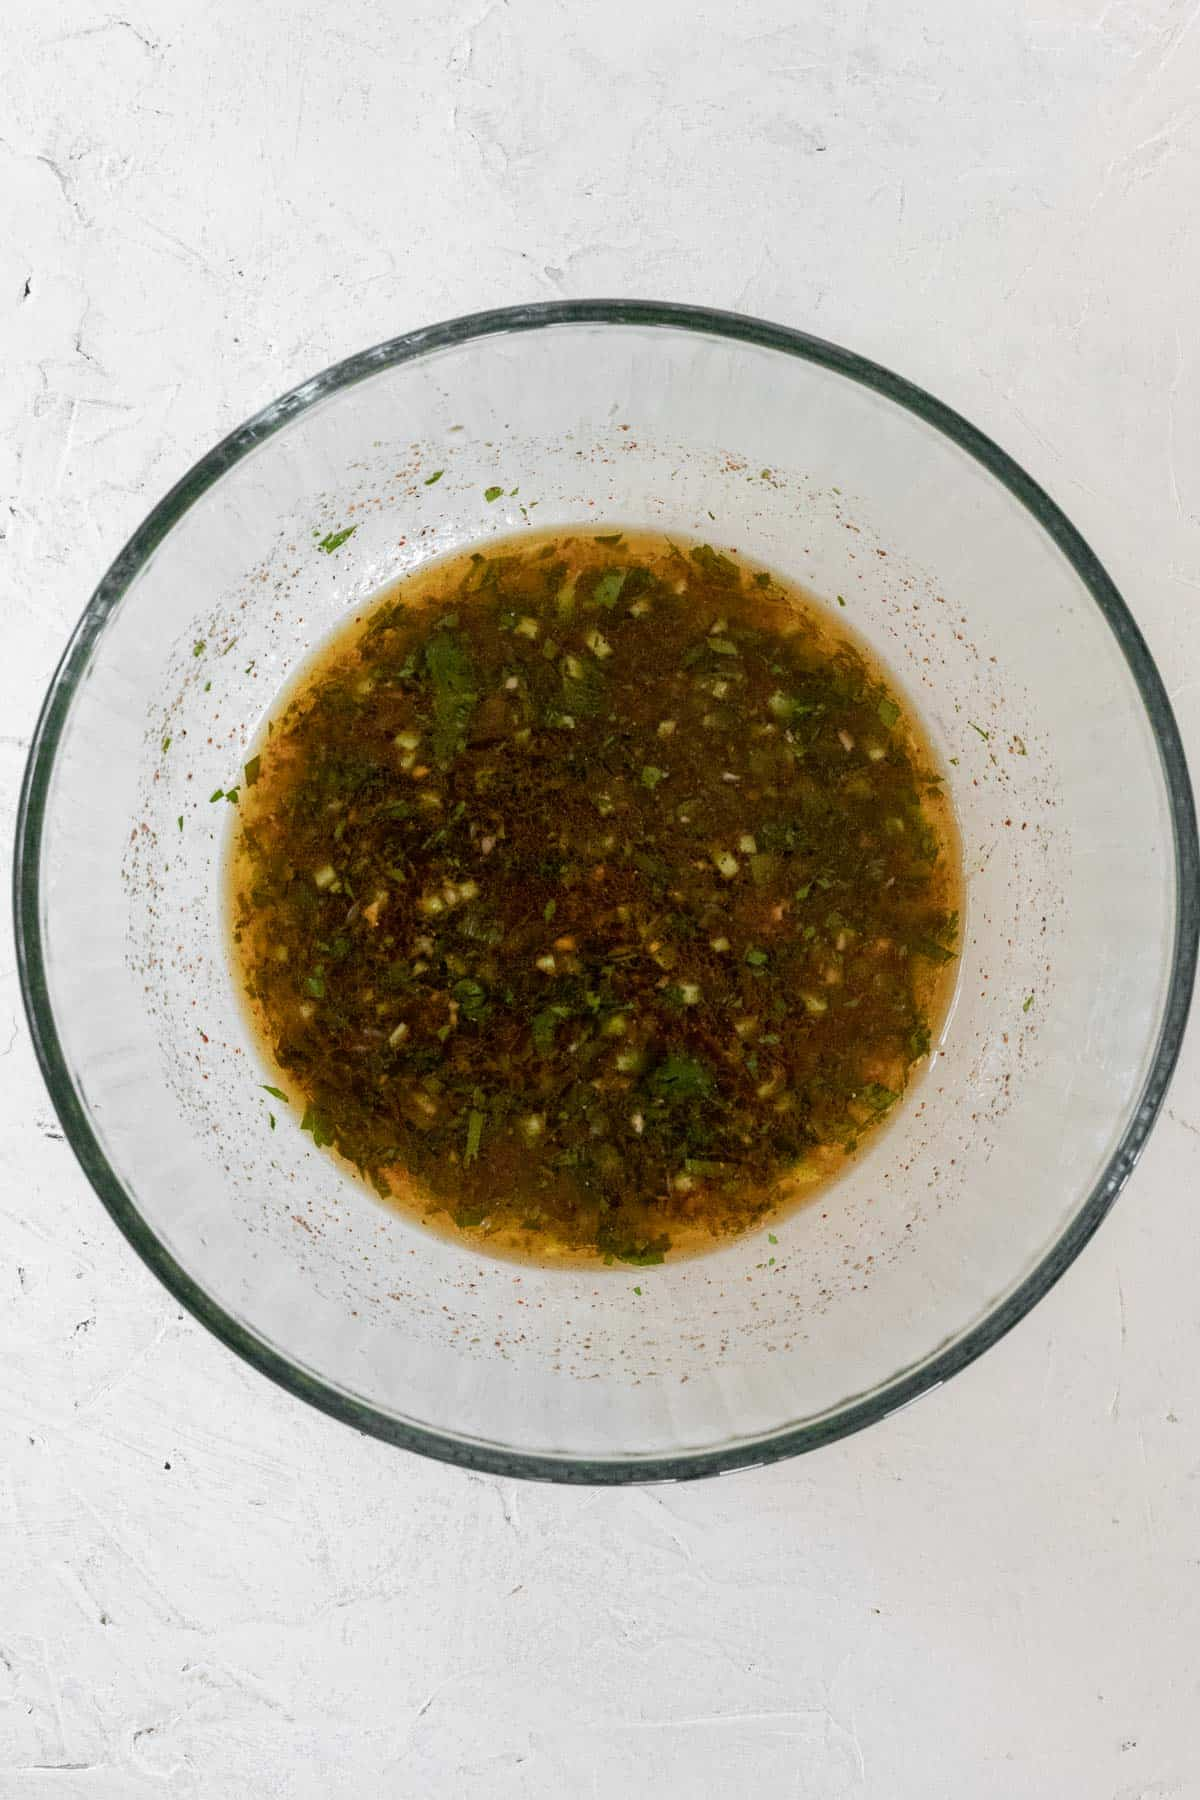 Tequila lime marinade in a glass bowl.